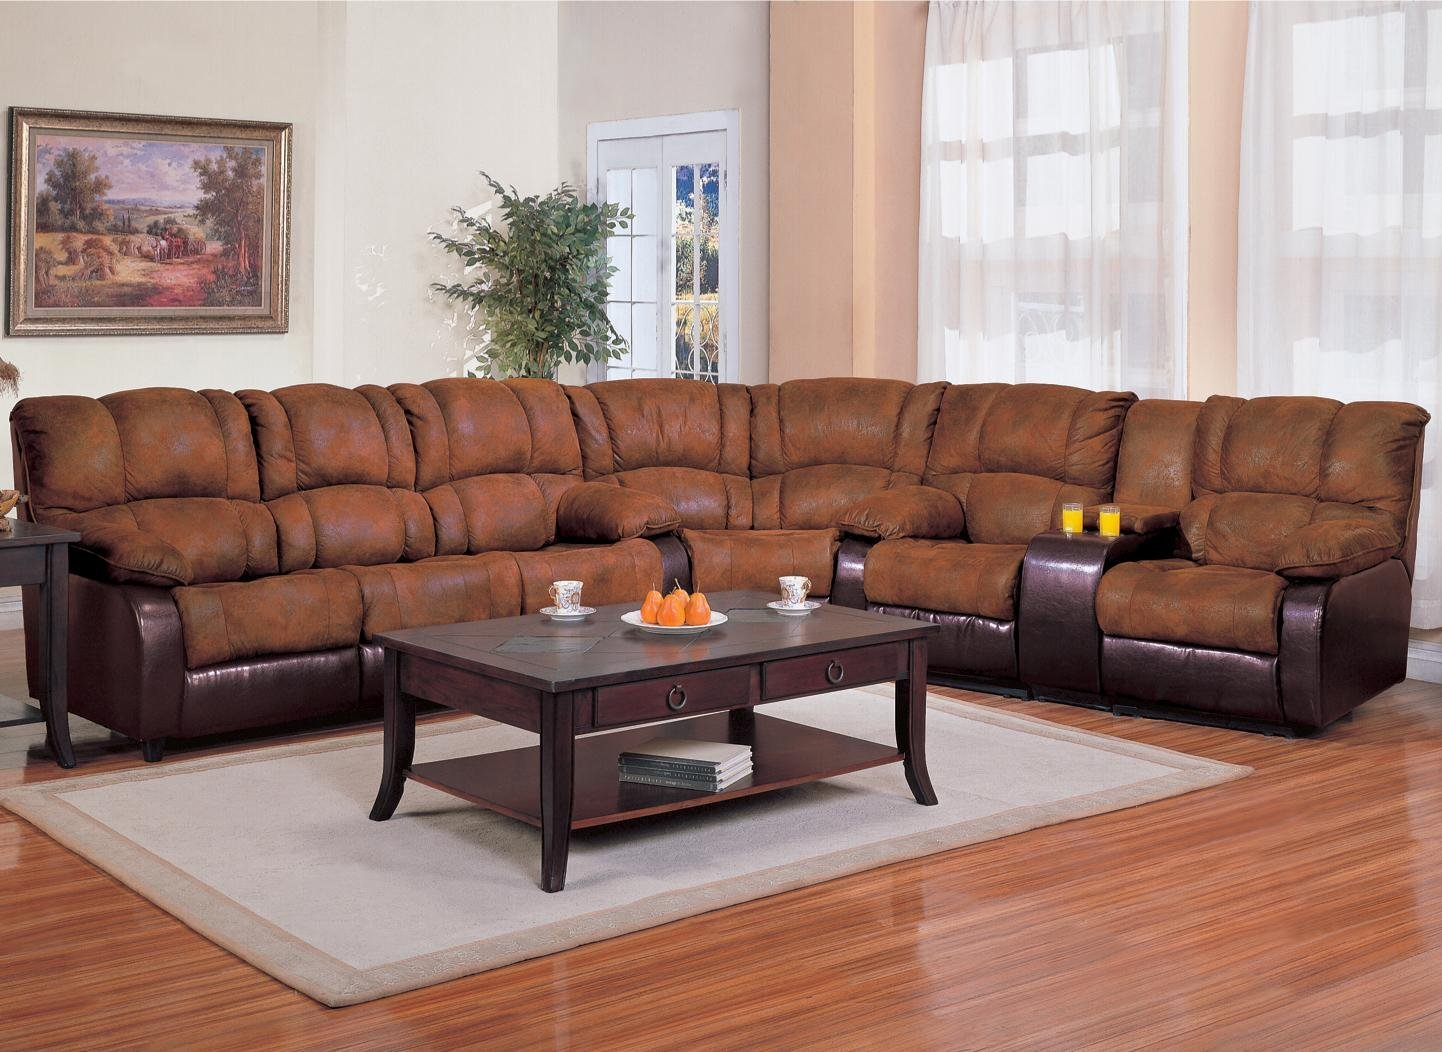 Sectional Sofas With Recliners | Sectional Sofa With Sleeper And Recliner | Sectional Sleeper Sofa